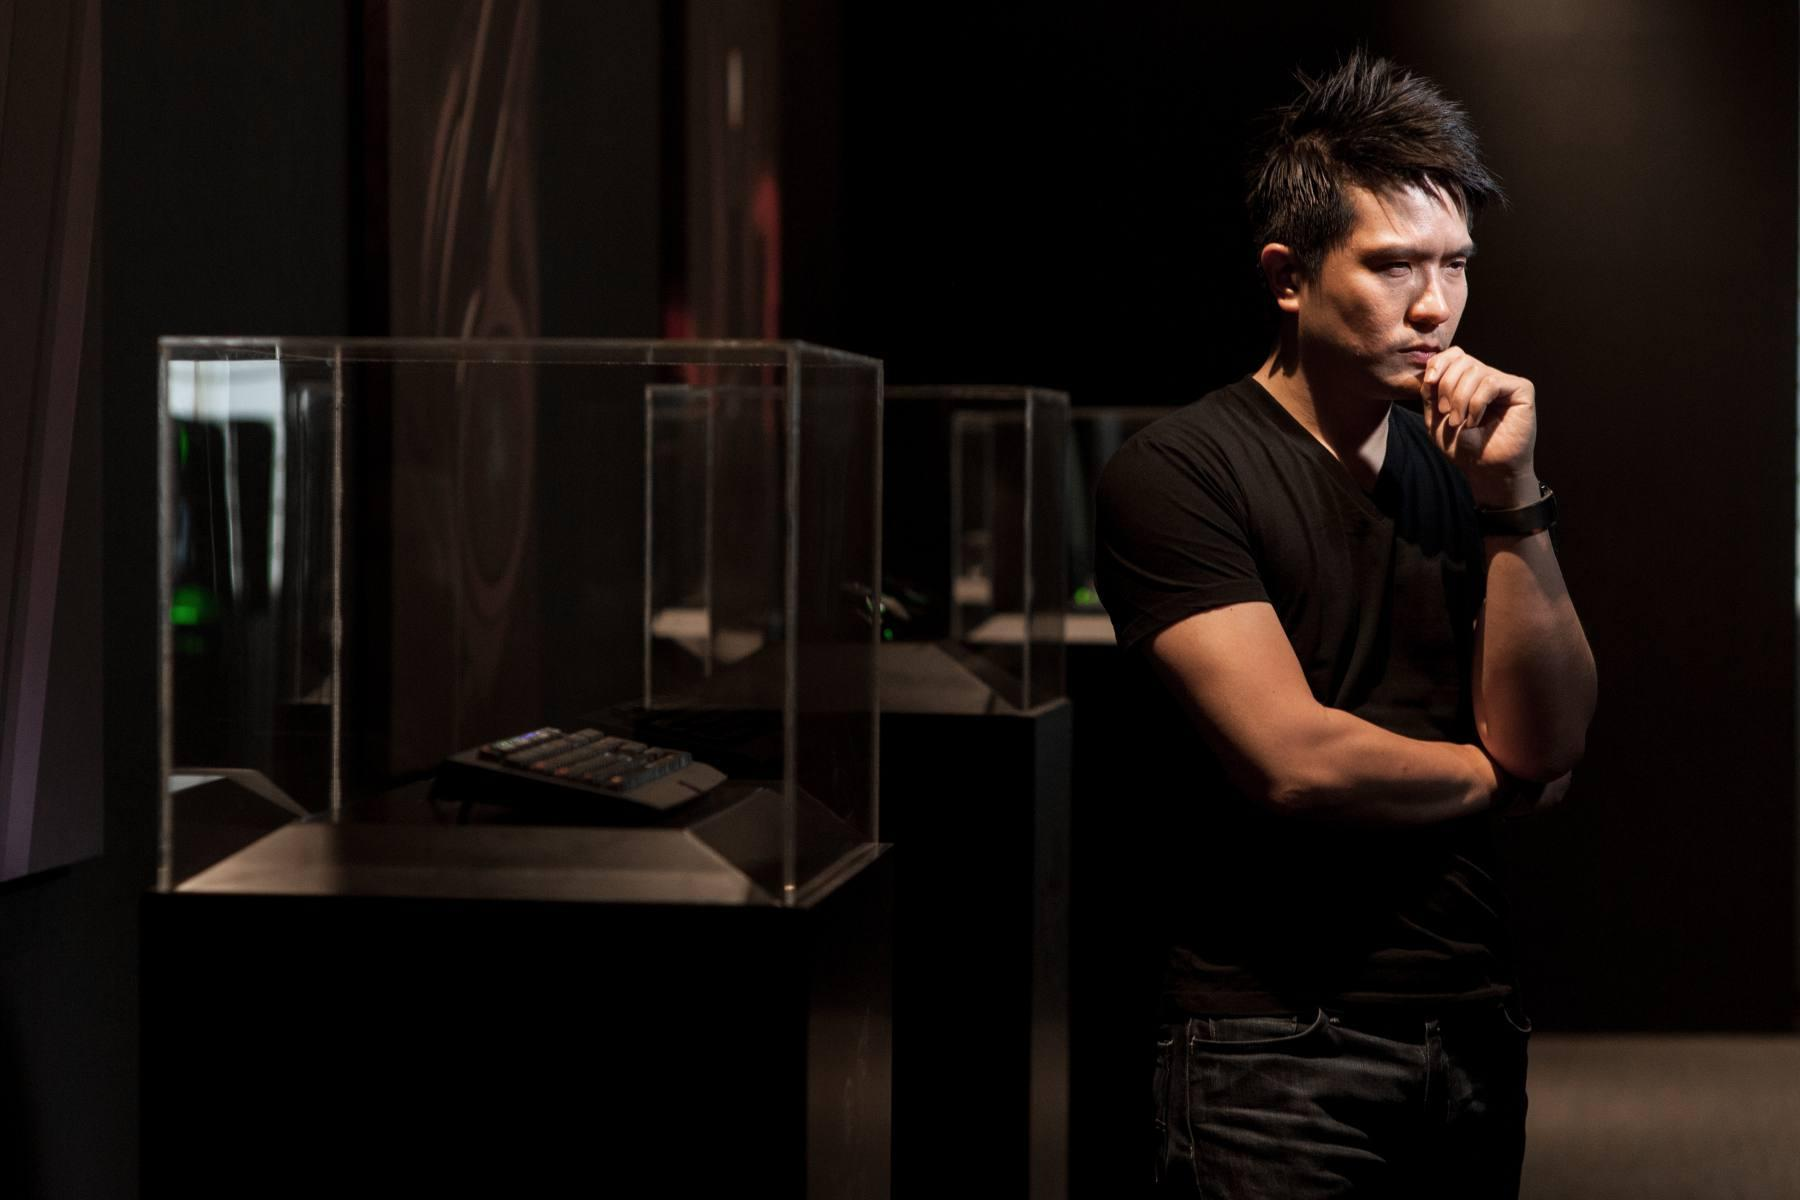 Razer CEO, Min-Liang Tan, To Become A Billionaire After IPO